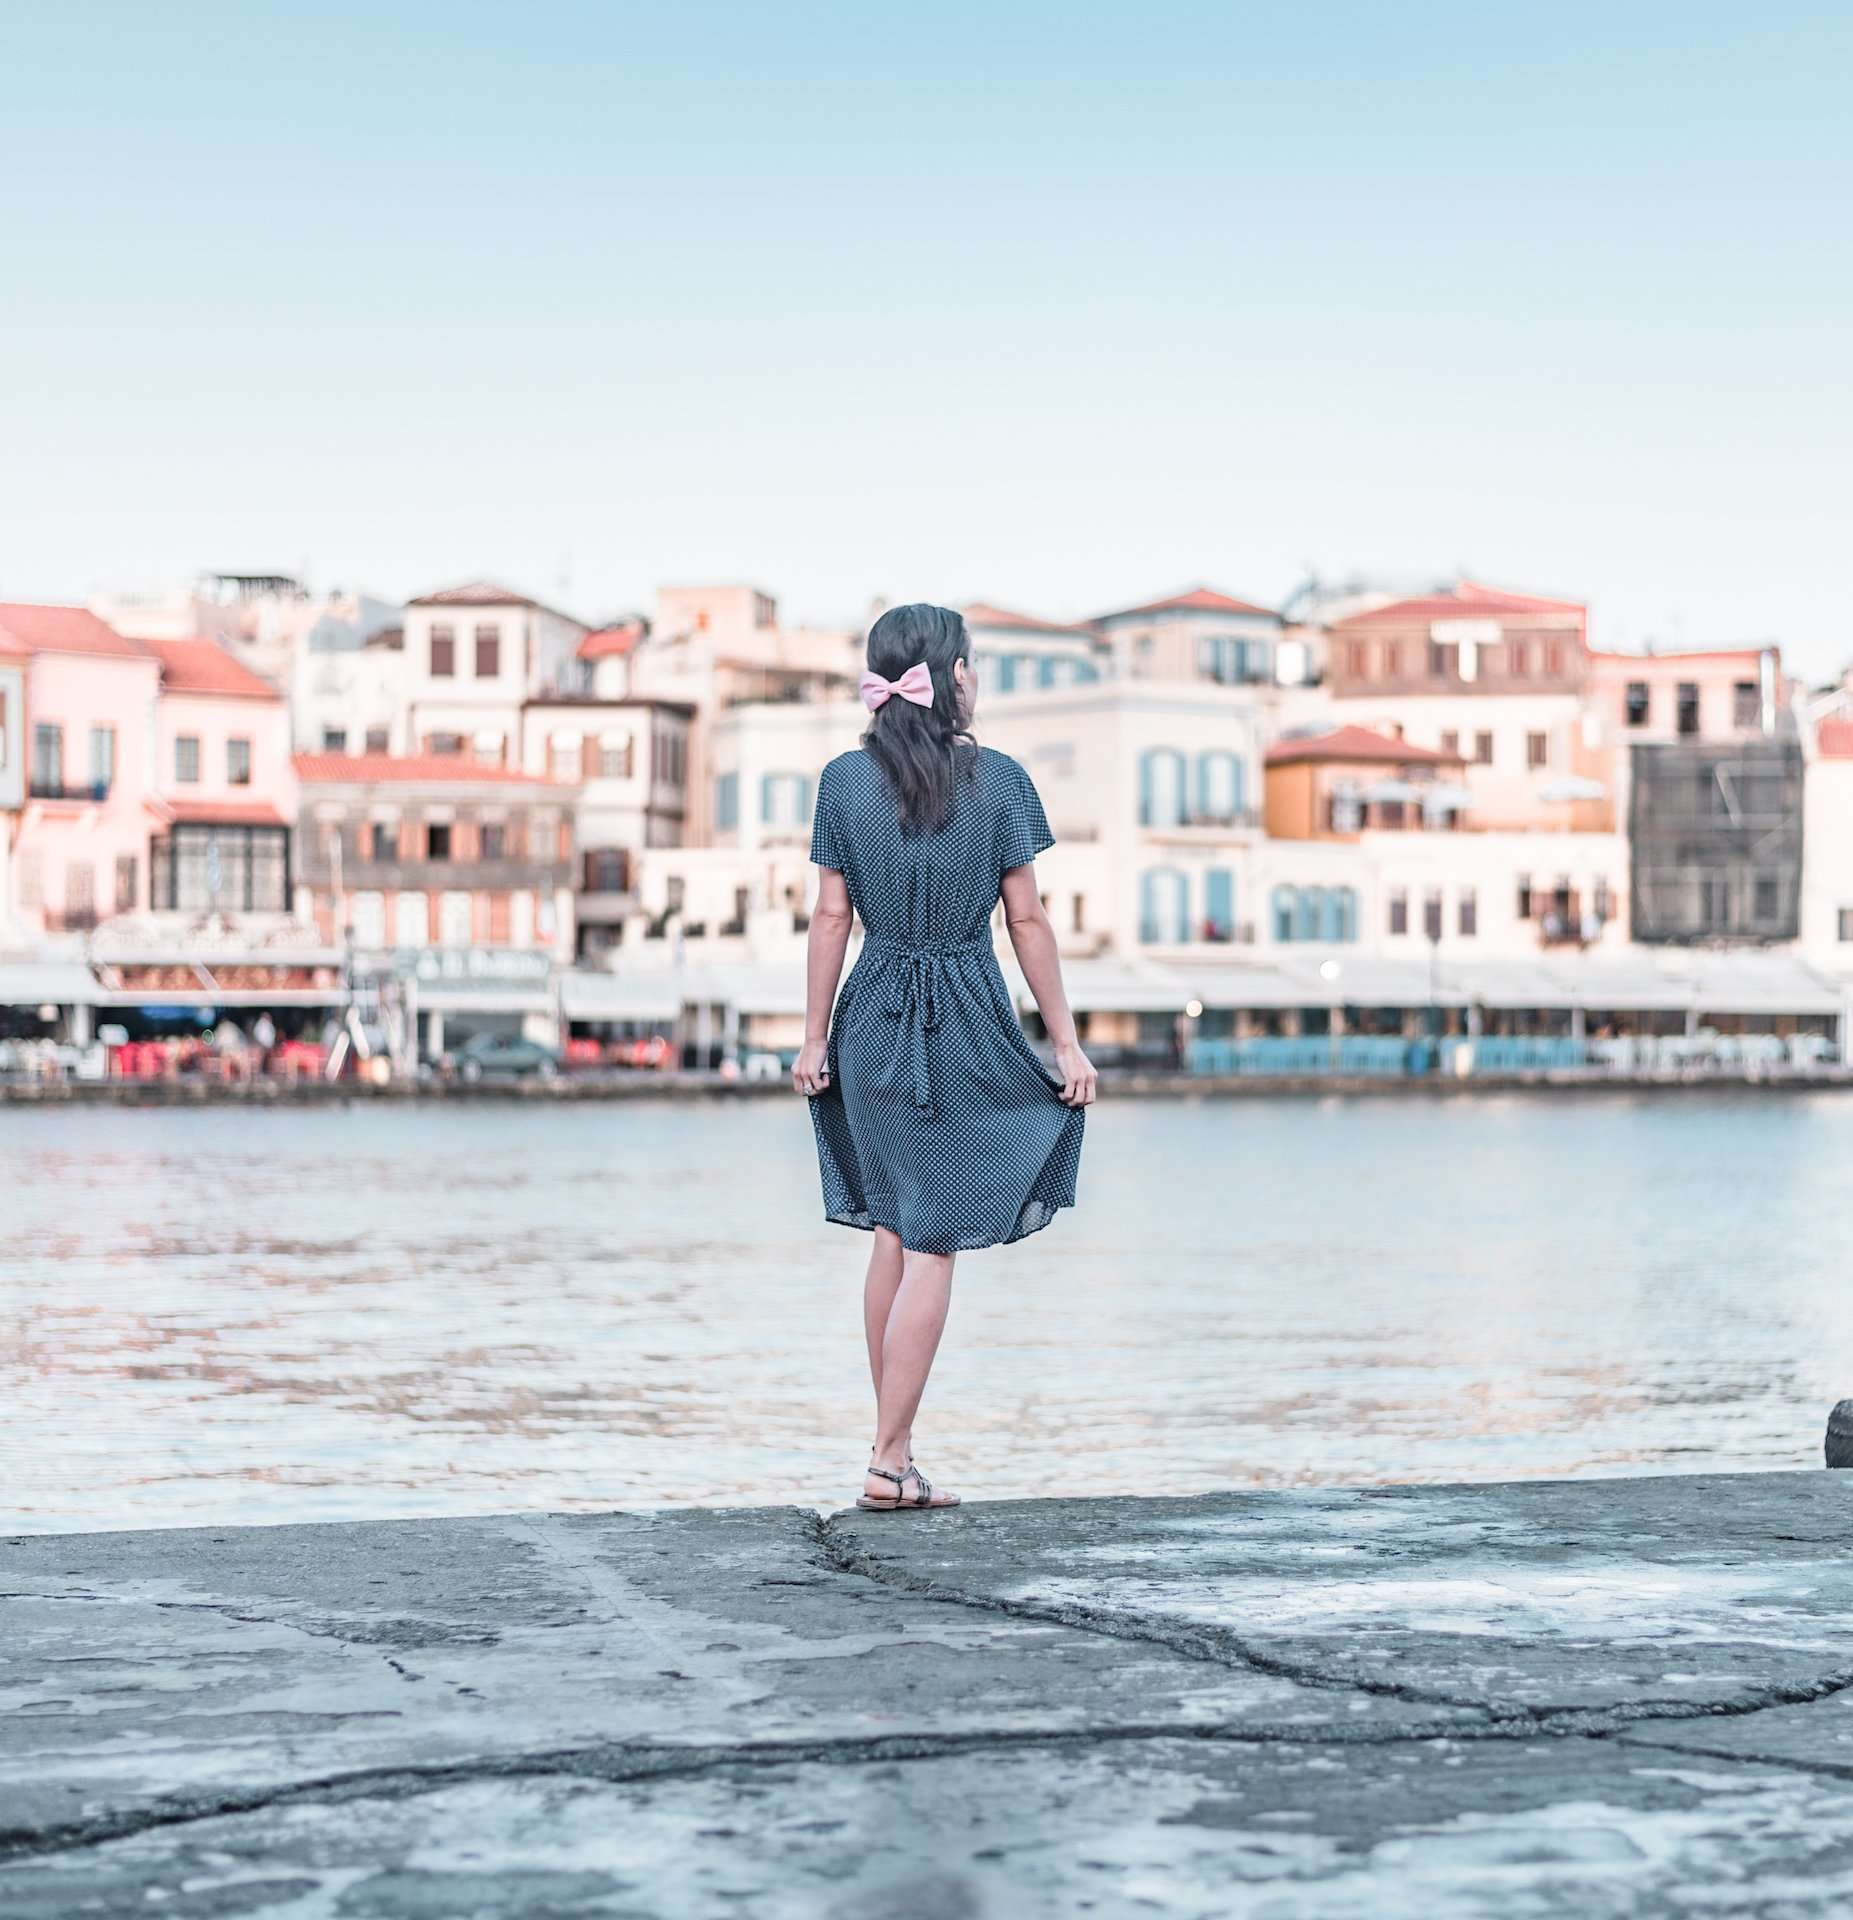 Standing along the Venetian Harbor in Chania, Crete